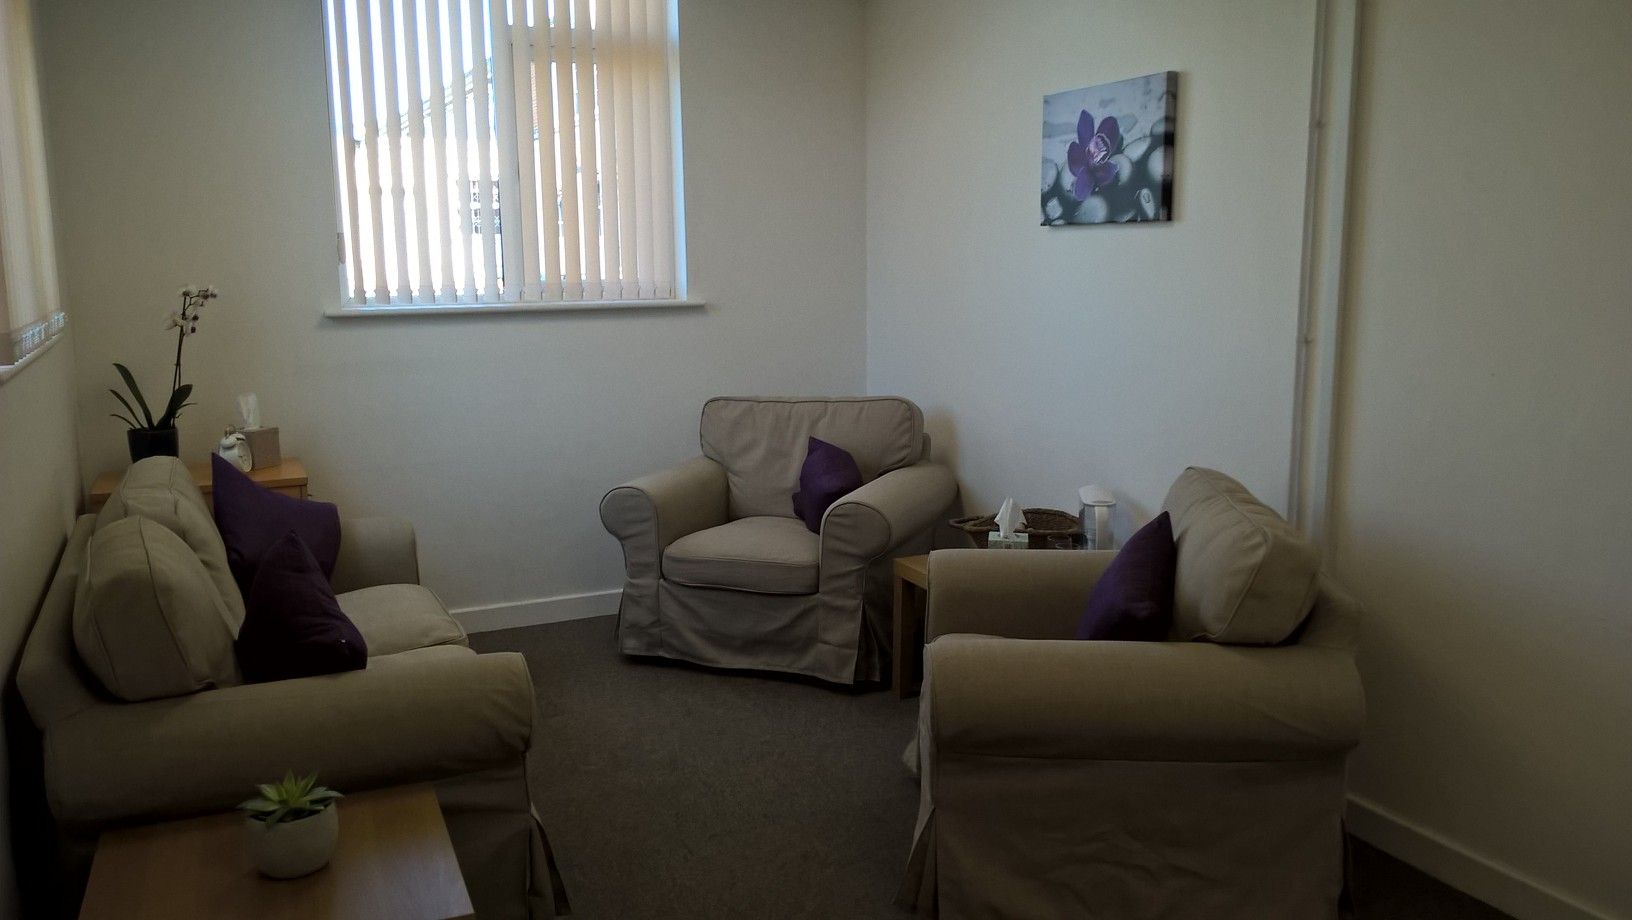 Sarah Tinsley relaxing counselling room for individuals in Chorley